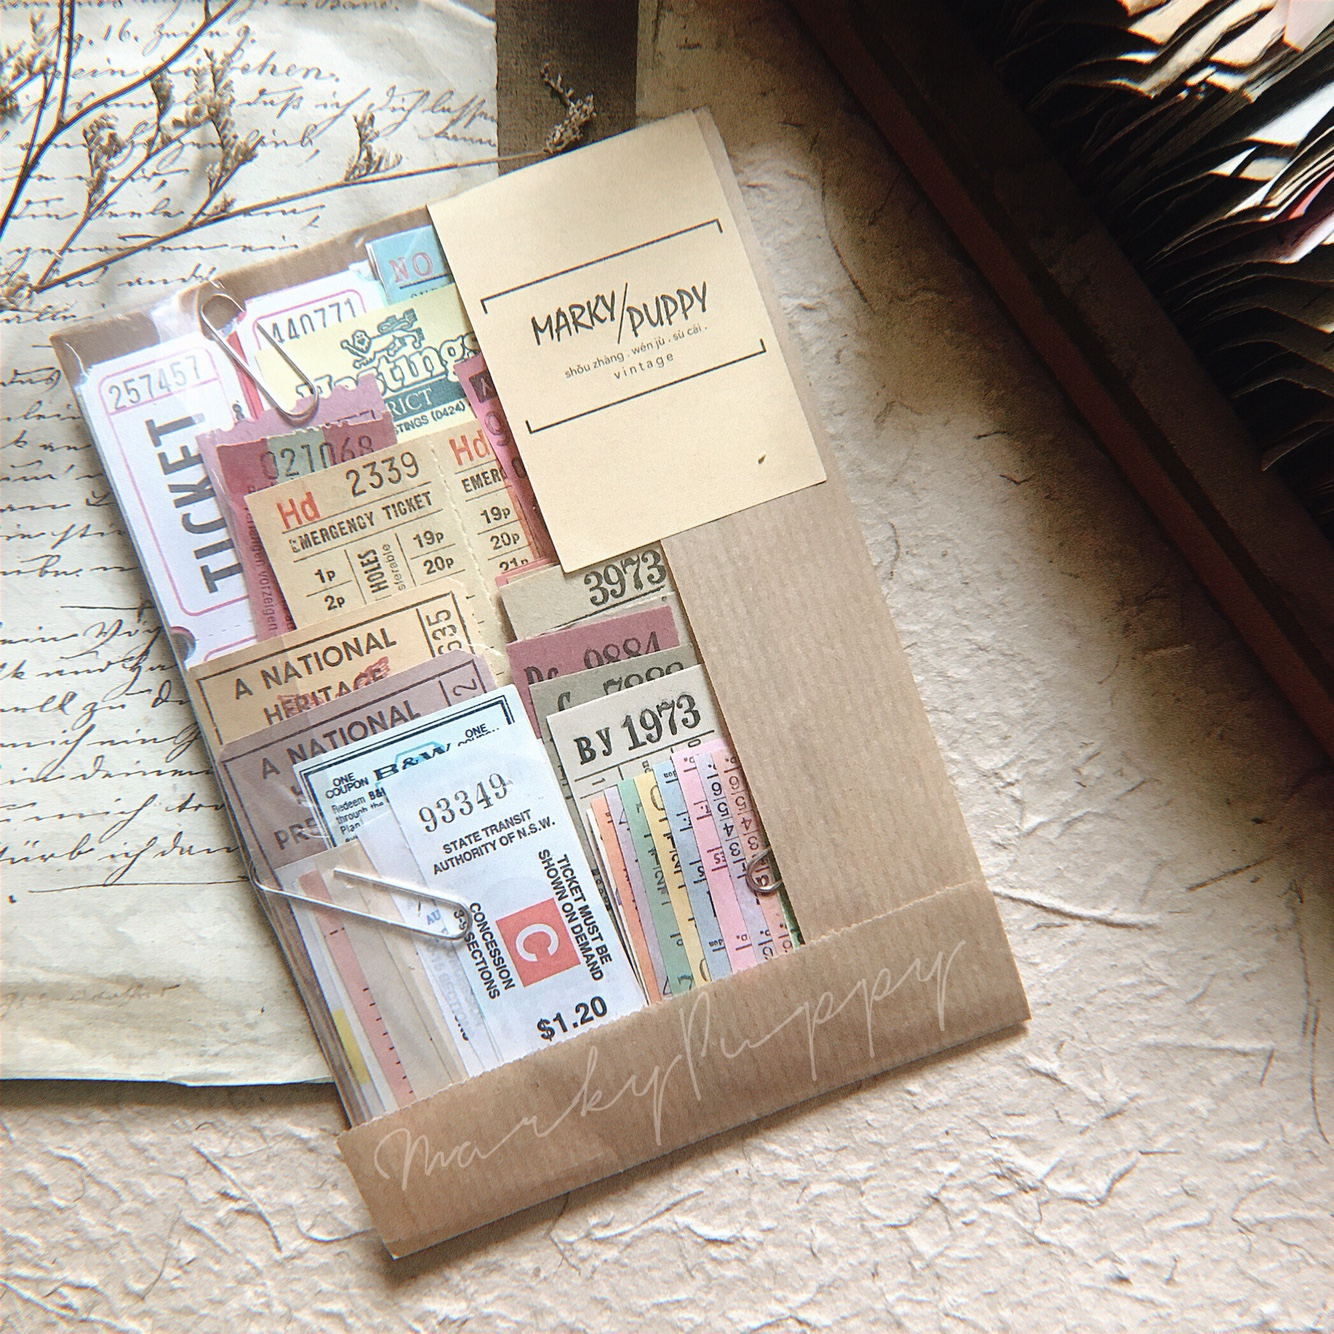 WOKO 180pcs/pack Vintage Receipt Retro Foreign Bills Old Ticket Mix Material Paper Sticker DIY Scrapbooking Projects Card Making